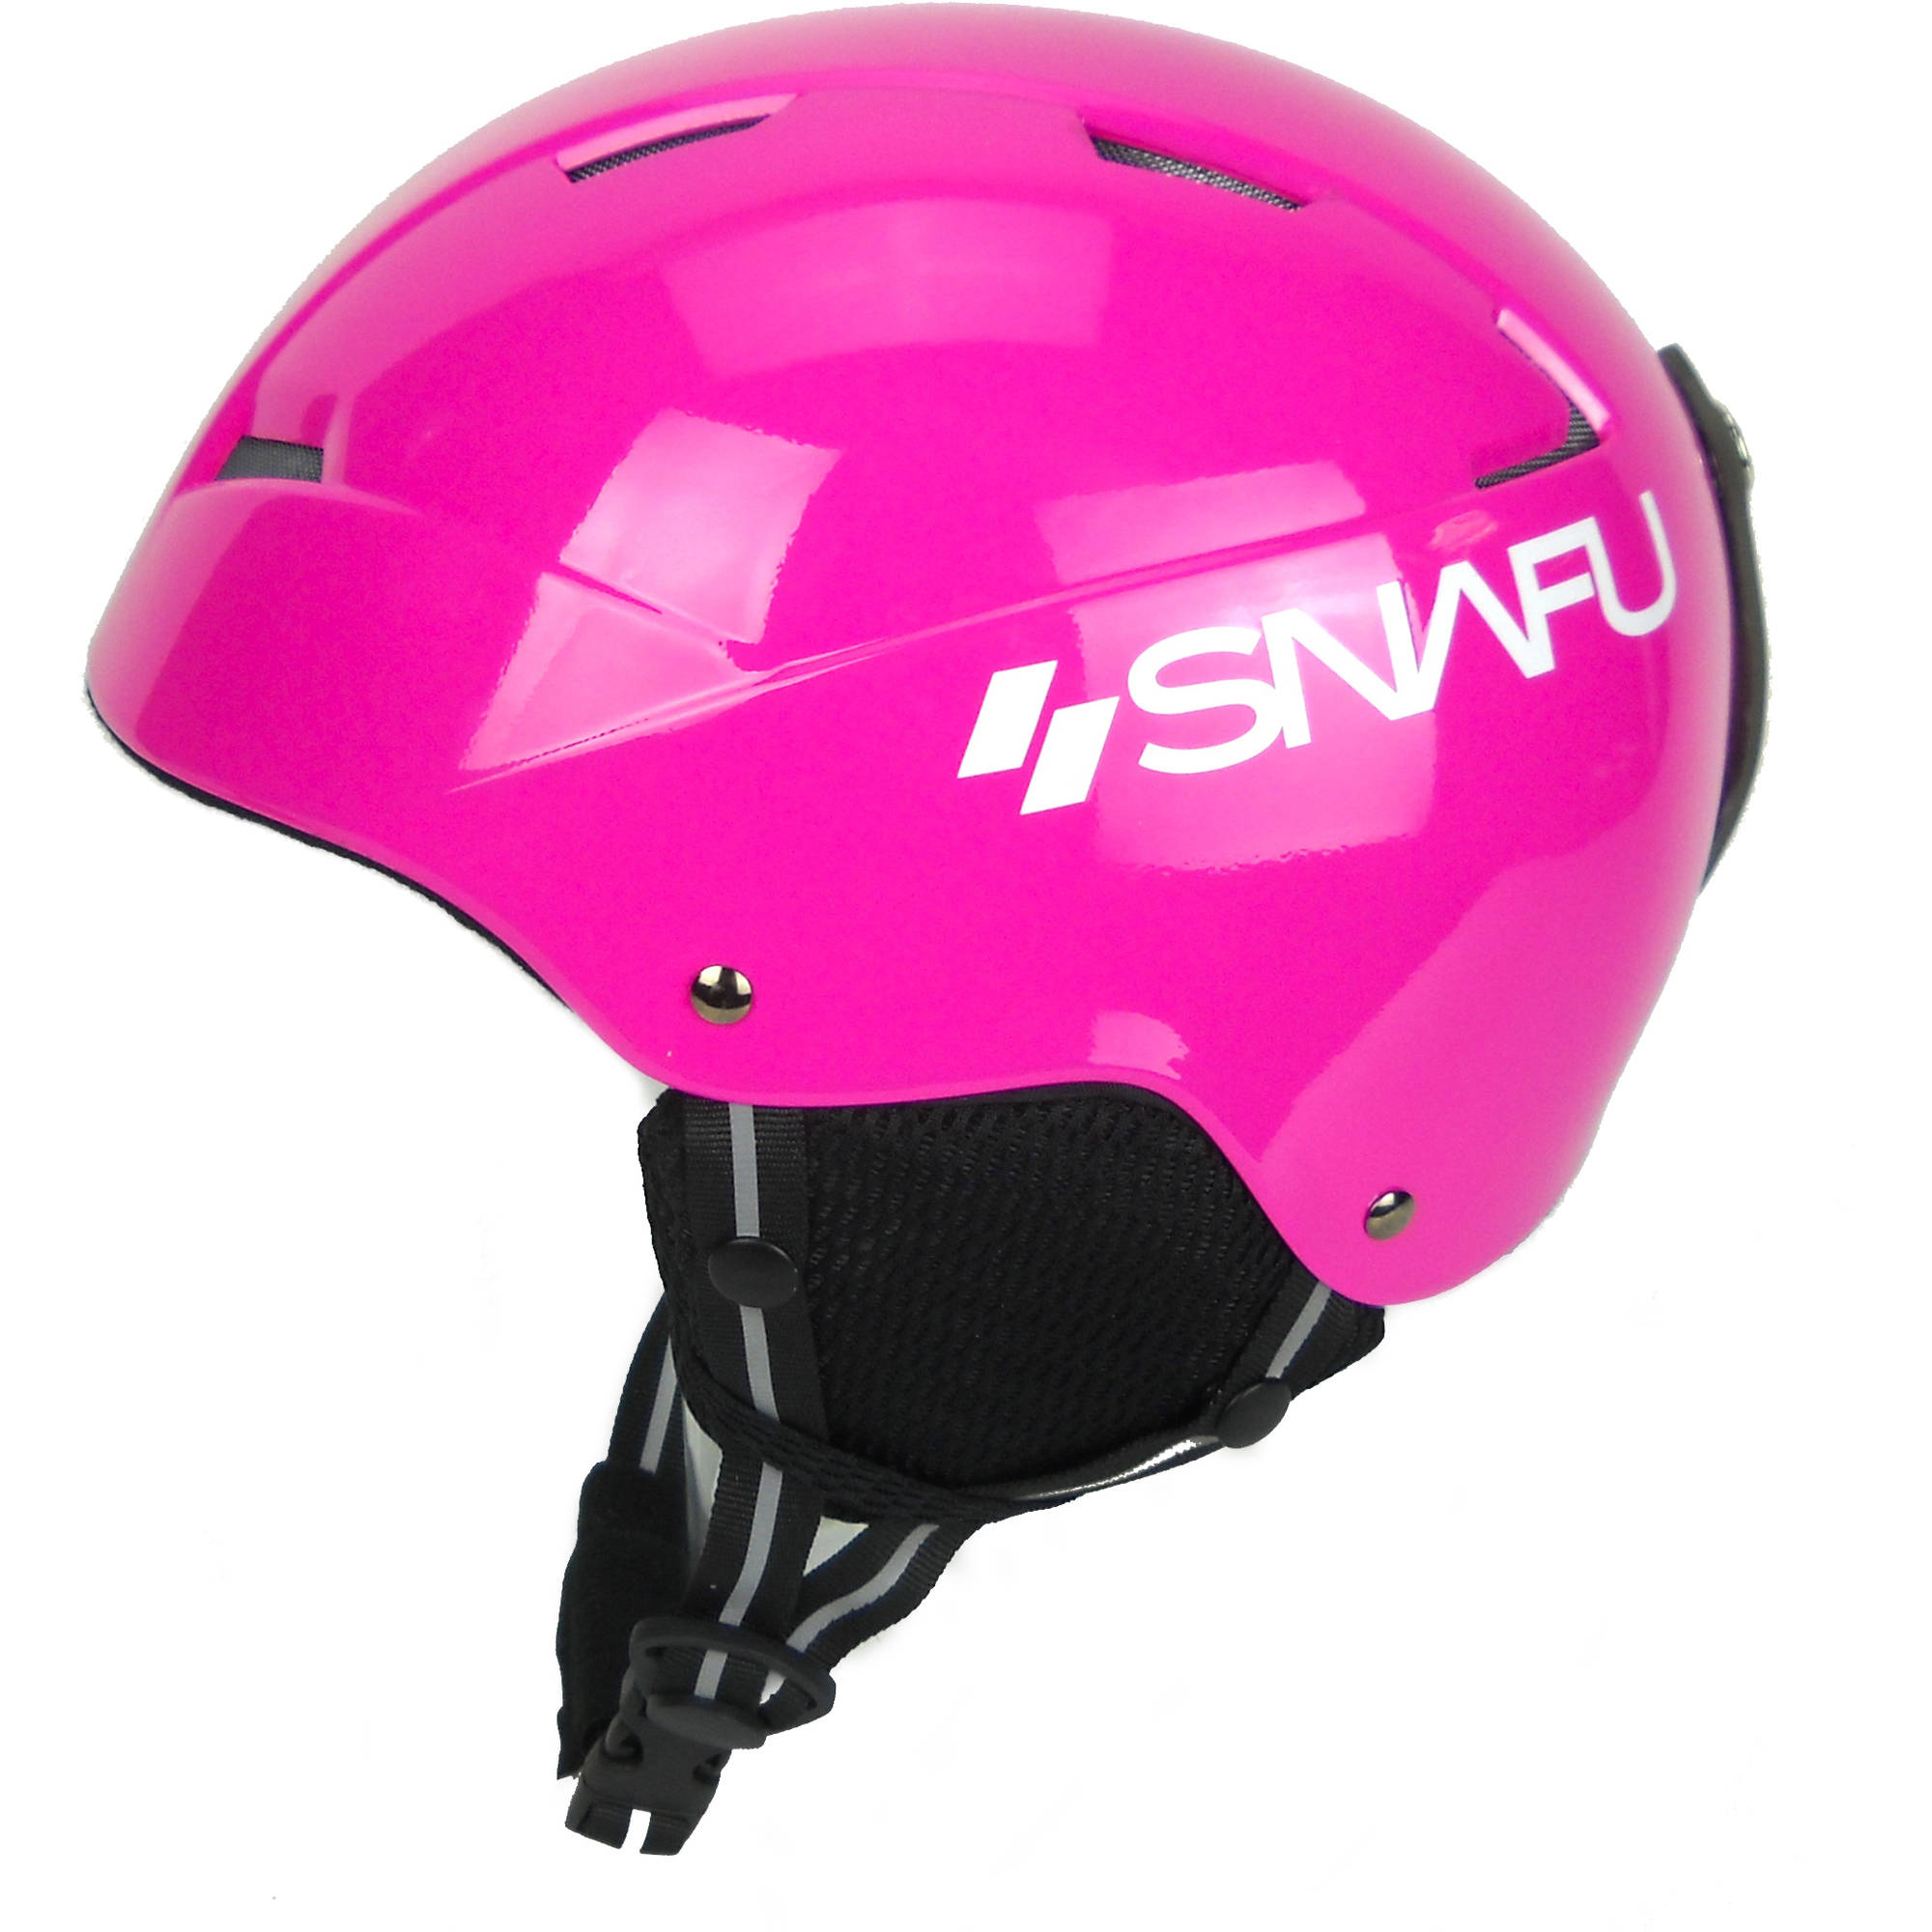 SNAFU Winter Sports Helmet, Gloss Pink, XS by